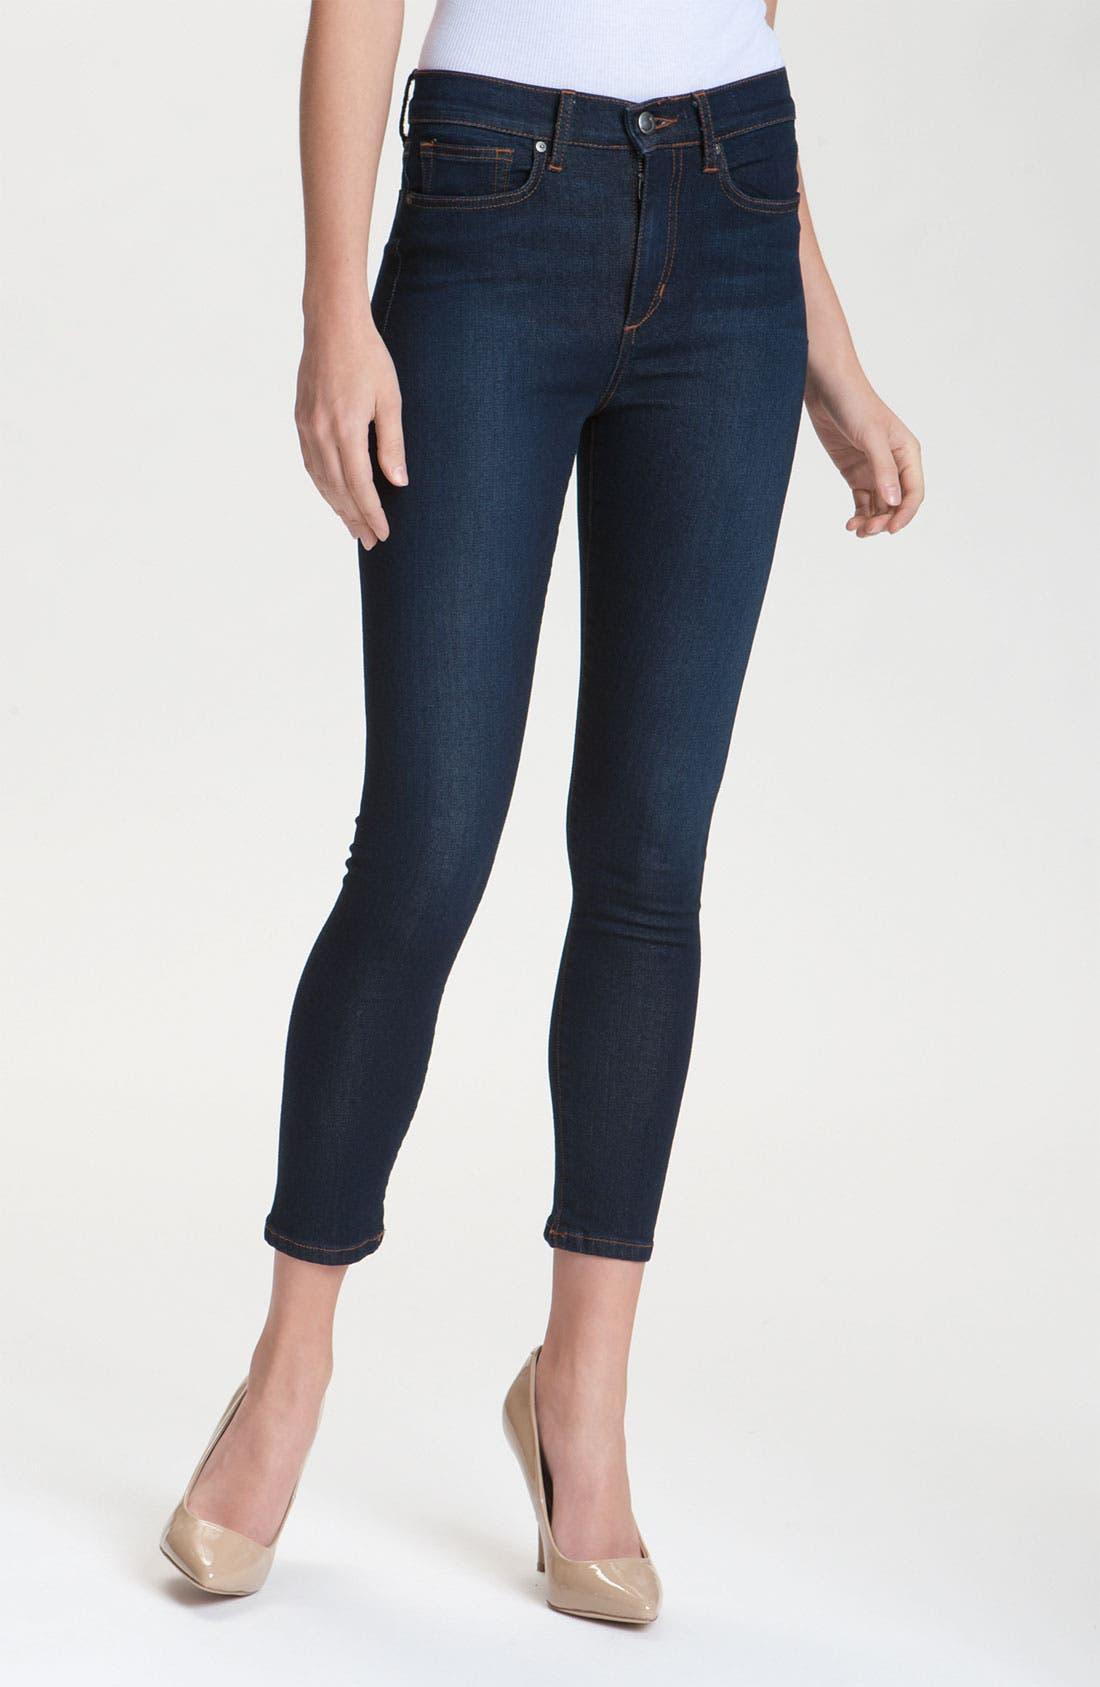 Alternate Image 1 Selected - Joe's 'High Water' Skinny Crop Jeans (Yasmin)